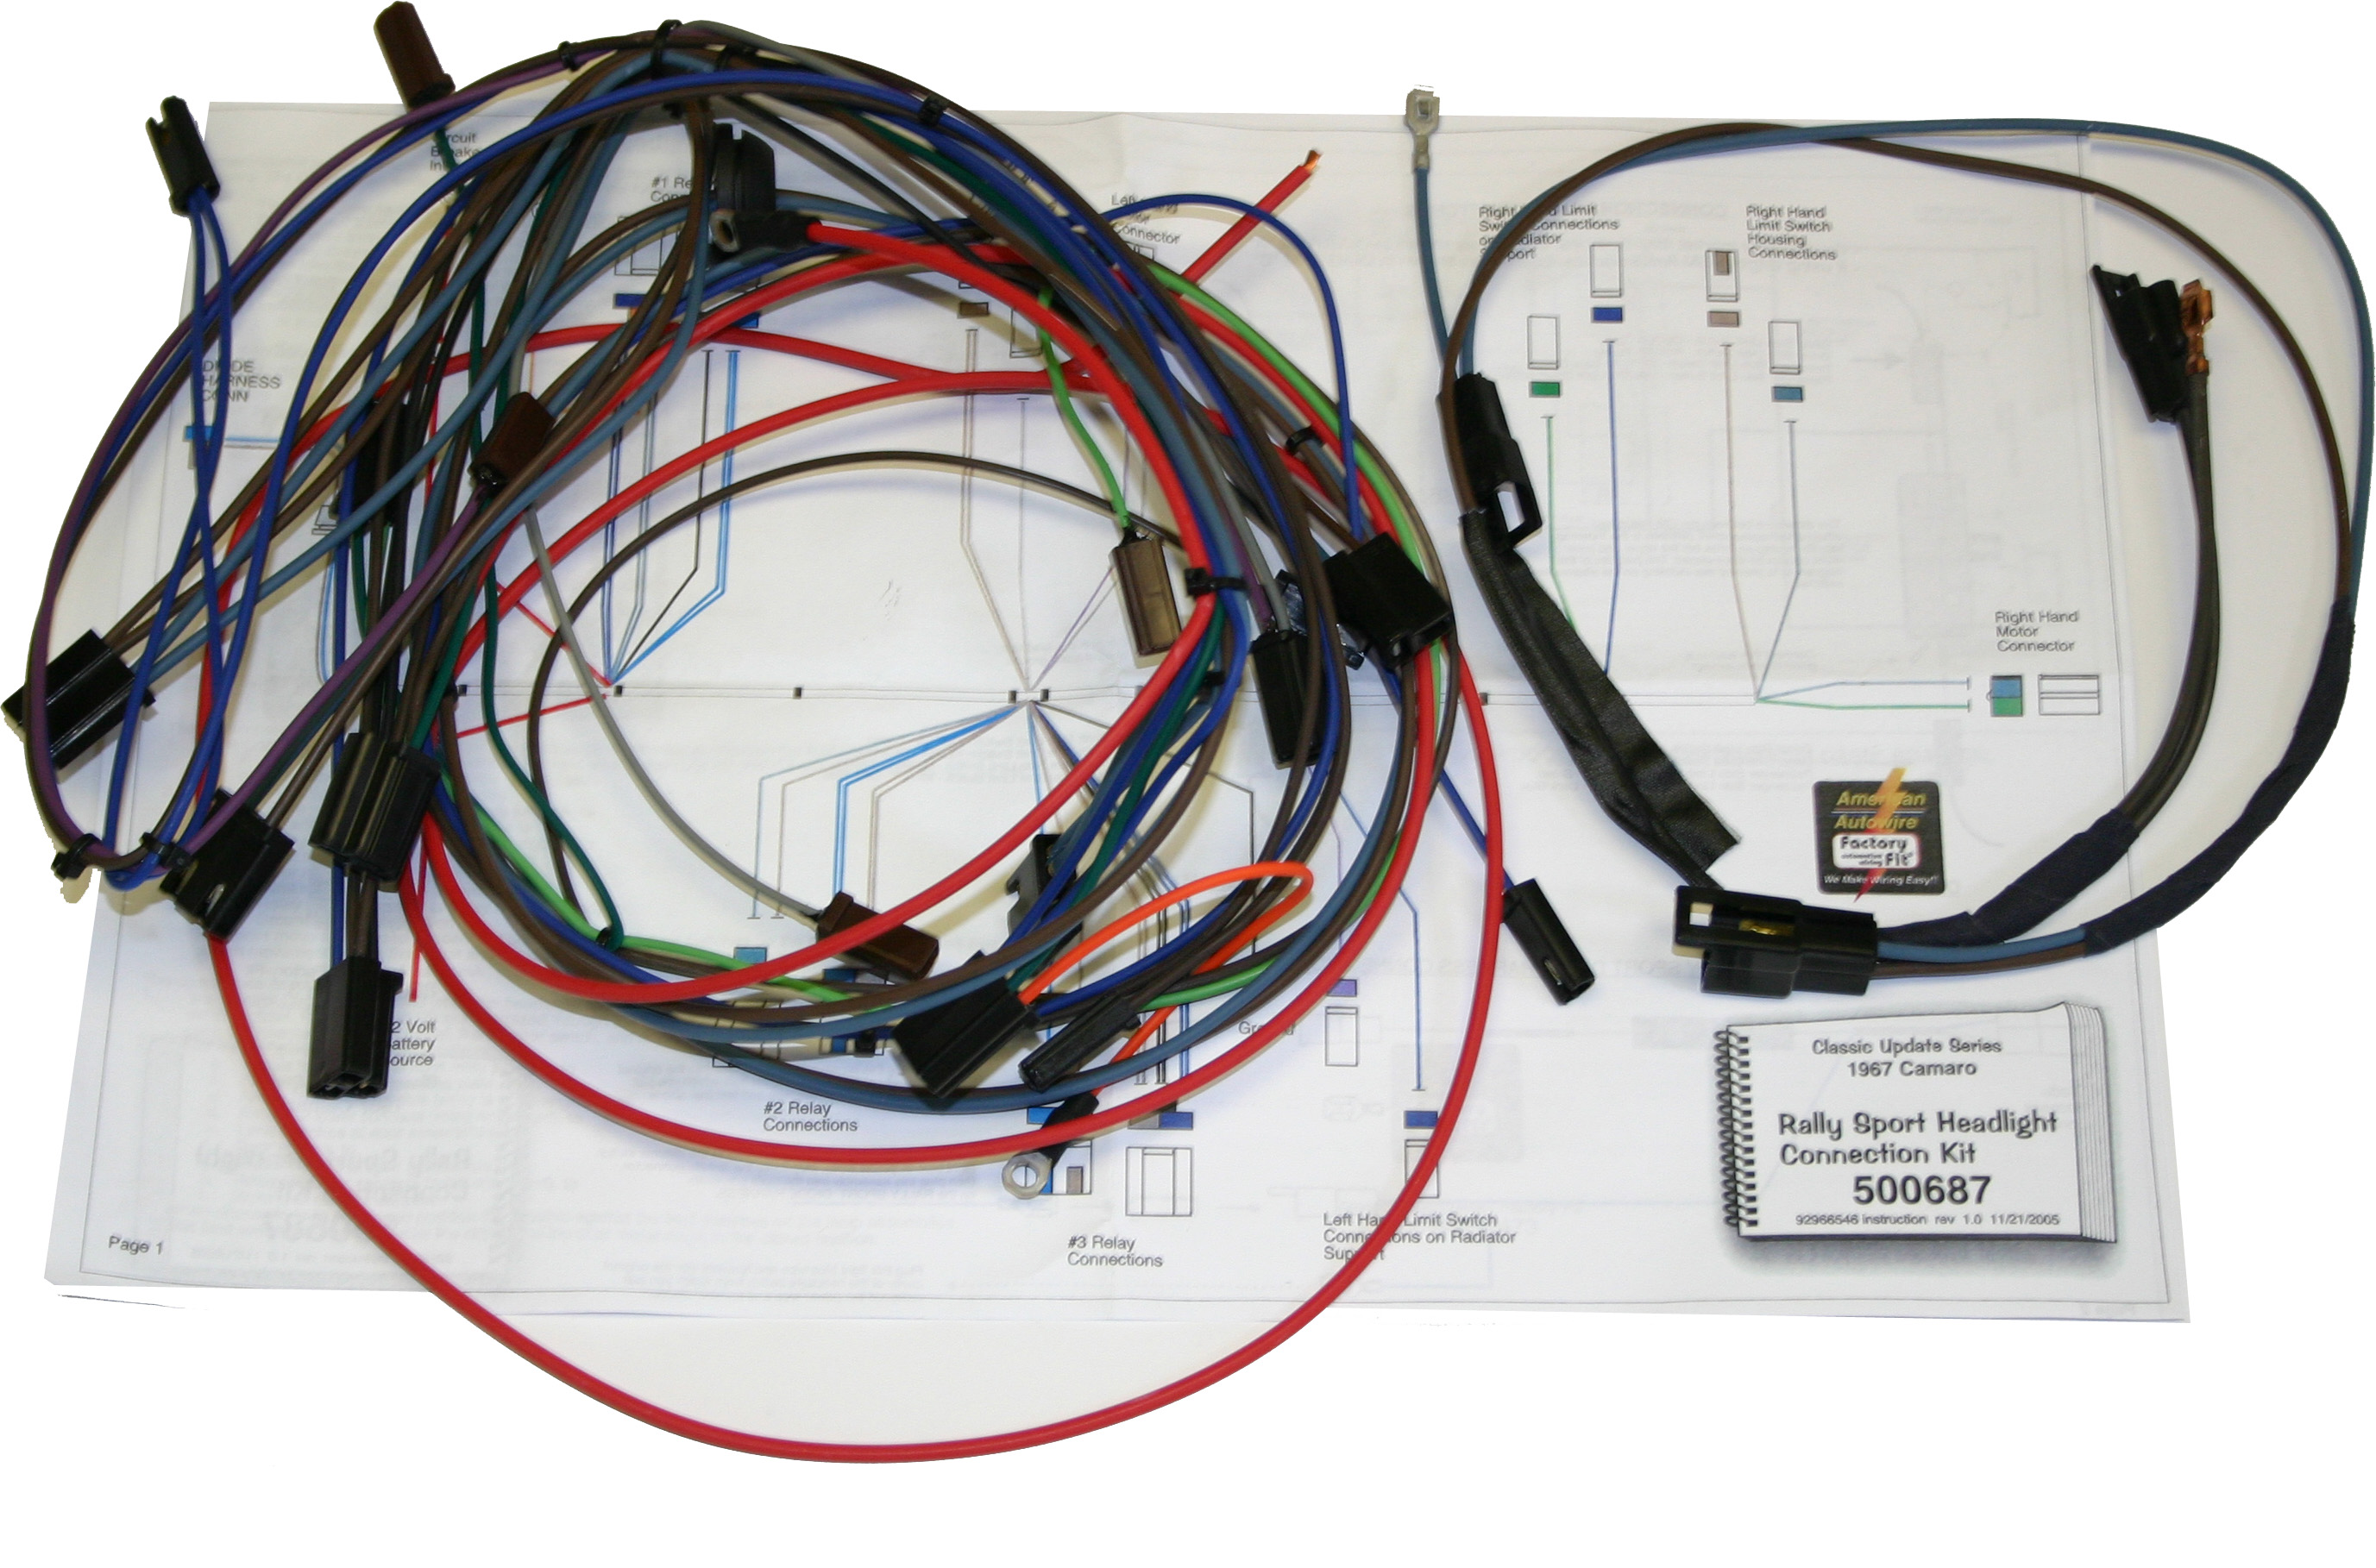 1968 Camaro Wiring Harness Layout Diagrams 1990 Dodge Dynasty Diagram Light 67 68 Classic Update 500661 Rh Mattsclassicbowties Com Complete